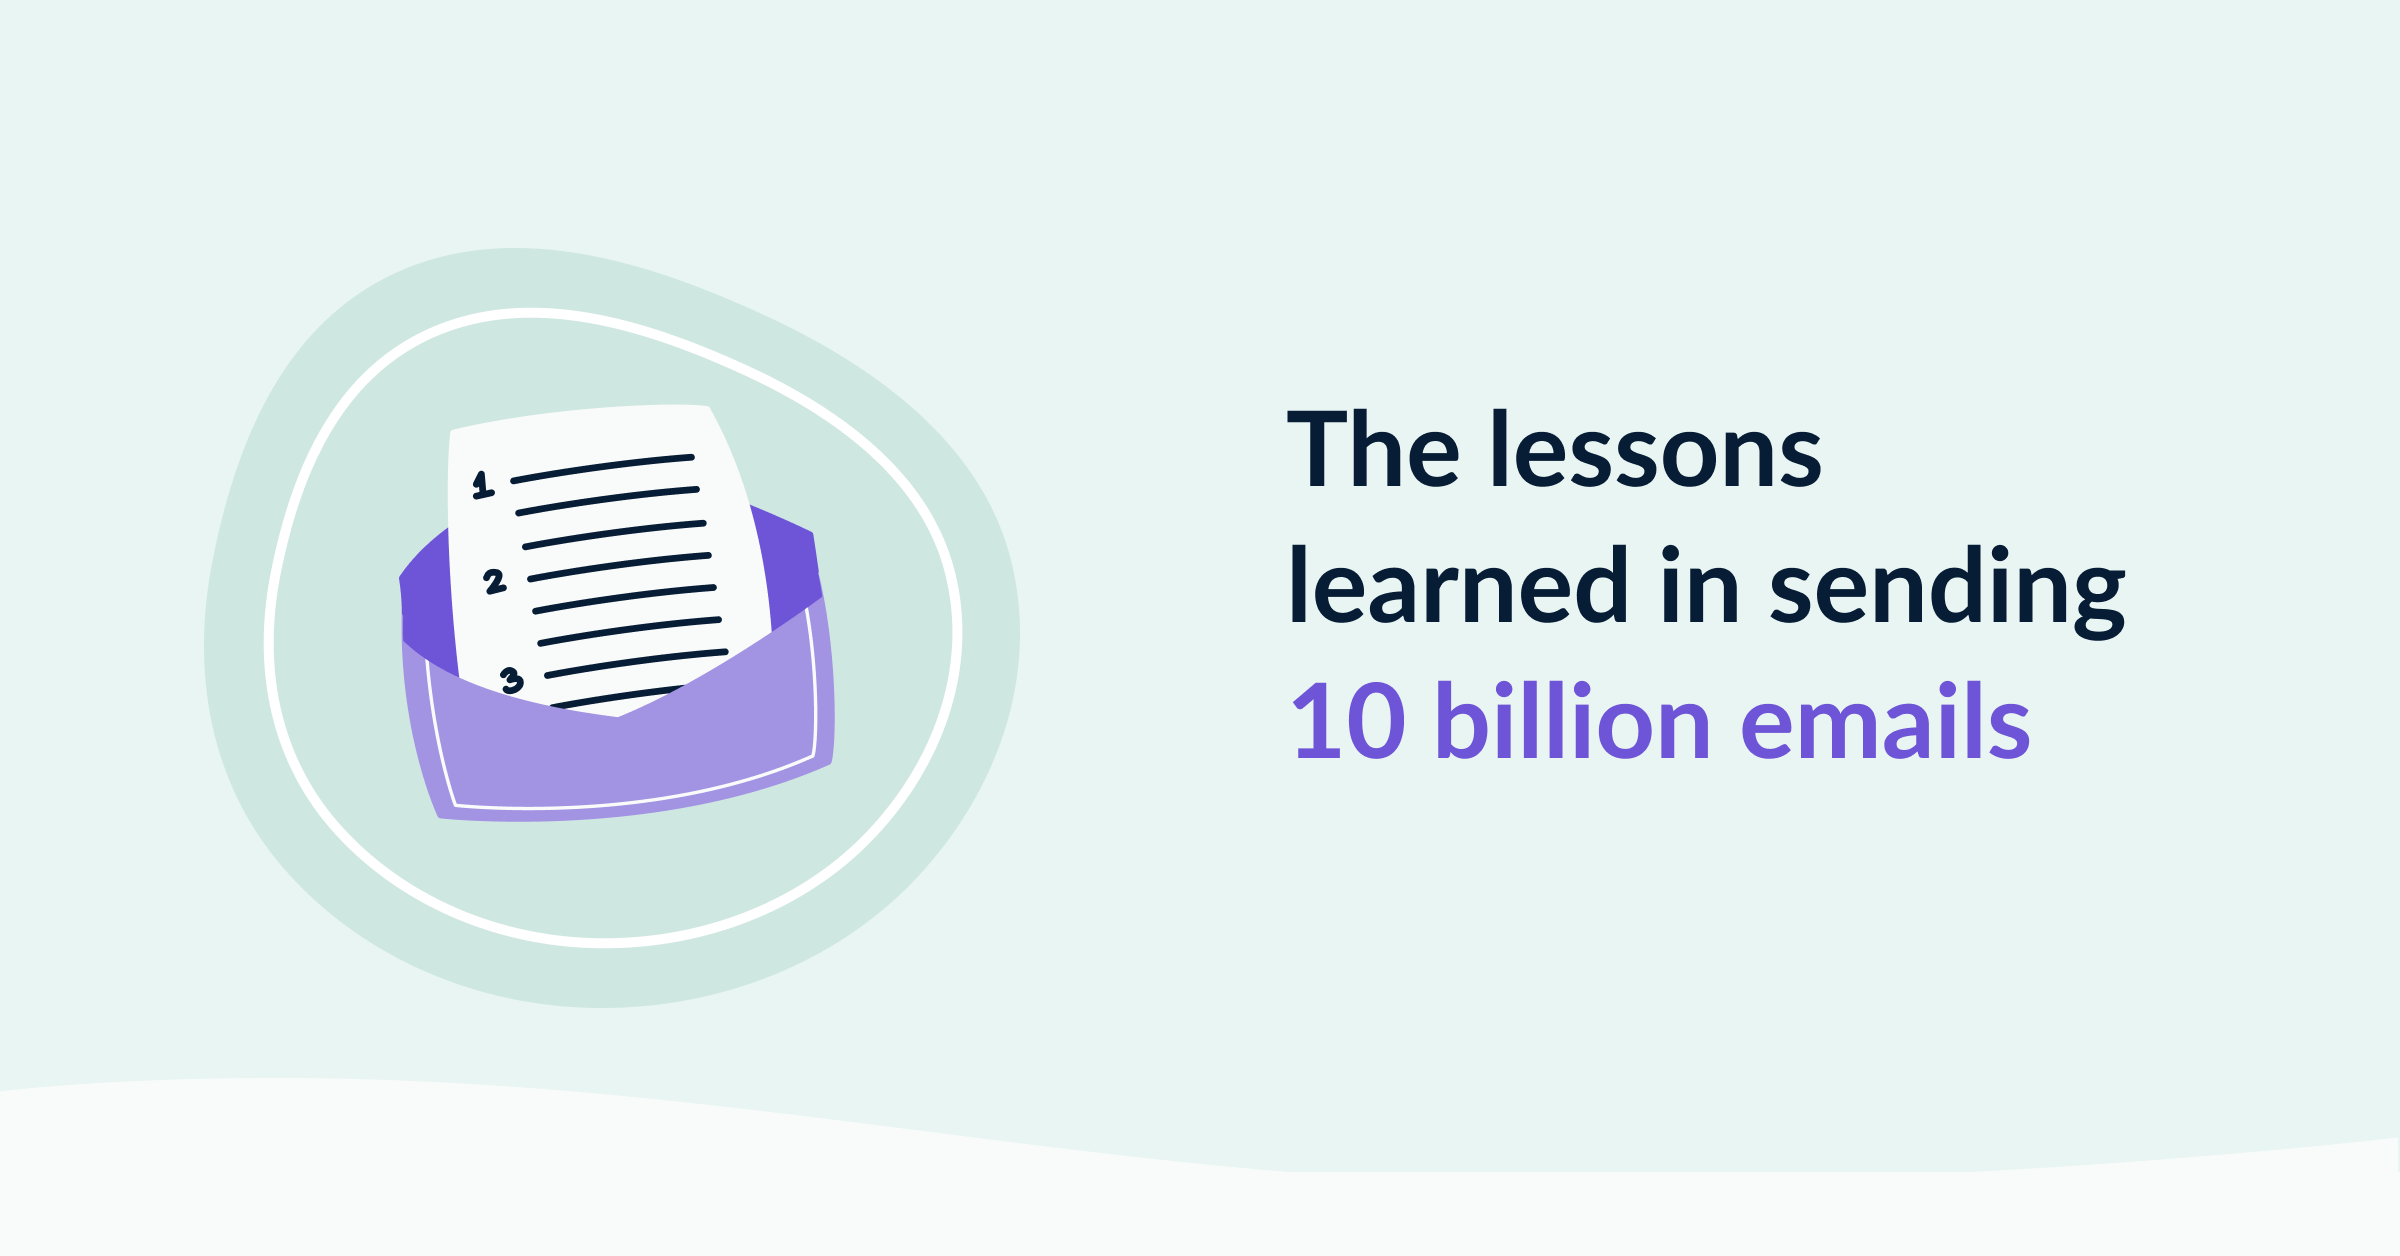 The lessons growing to 10 billion emails cover image